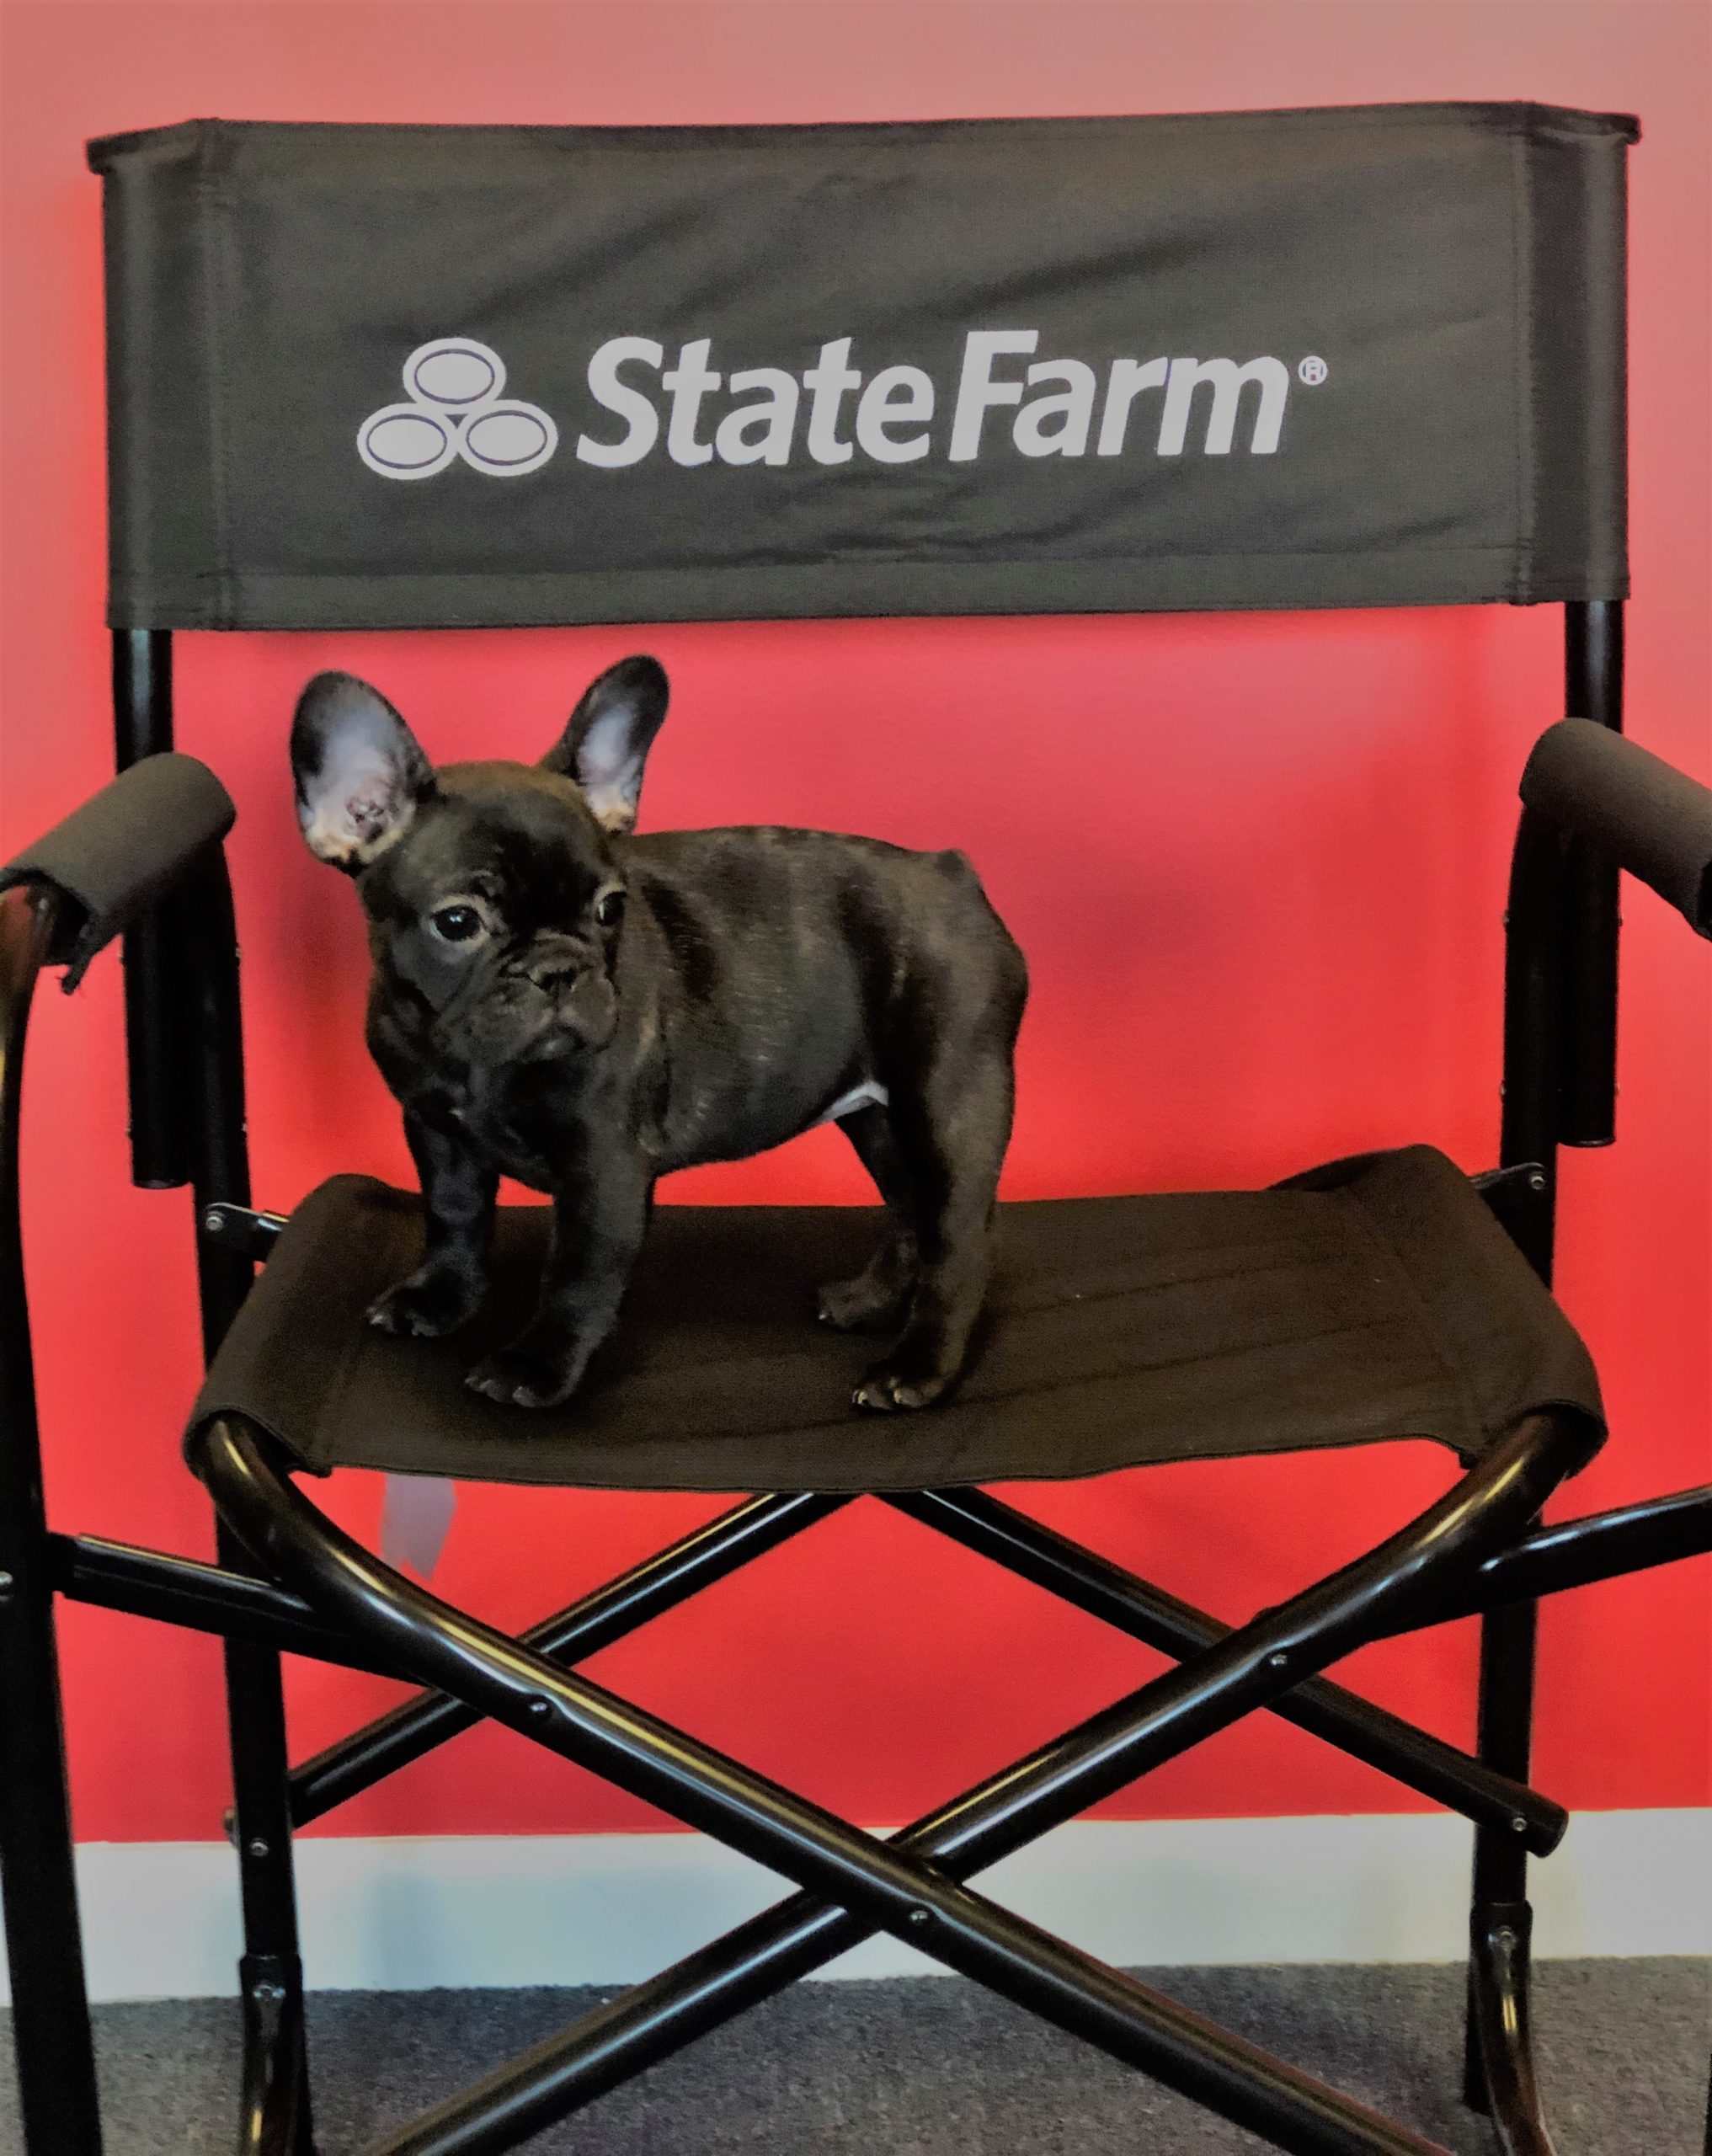 Brian Topping – State Farm